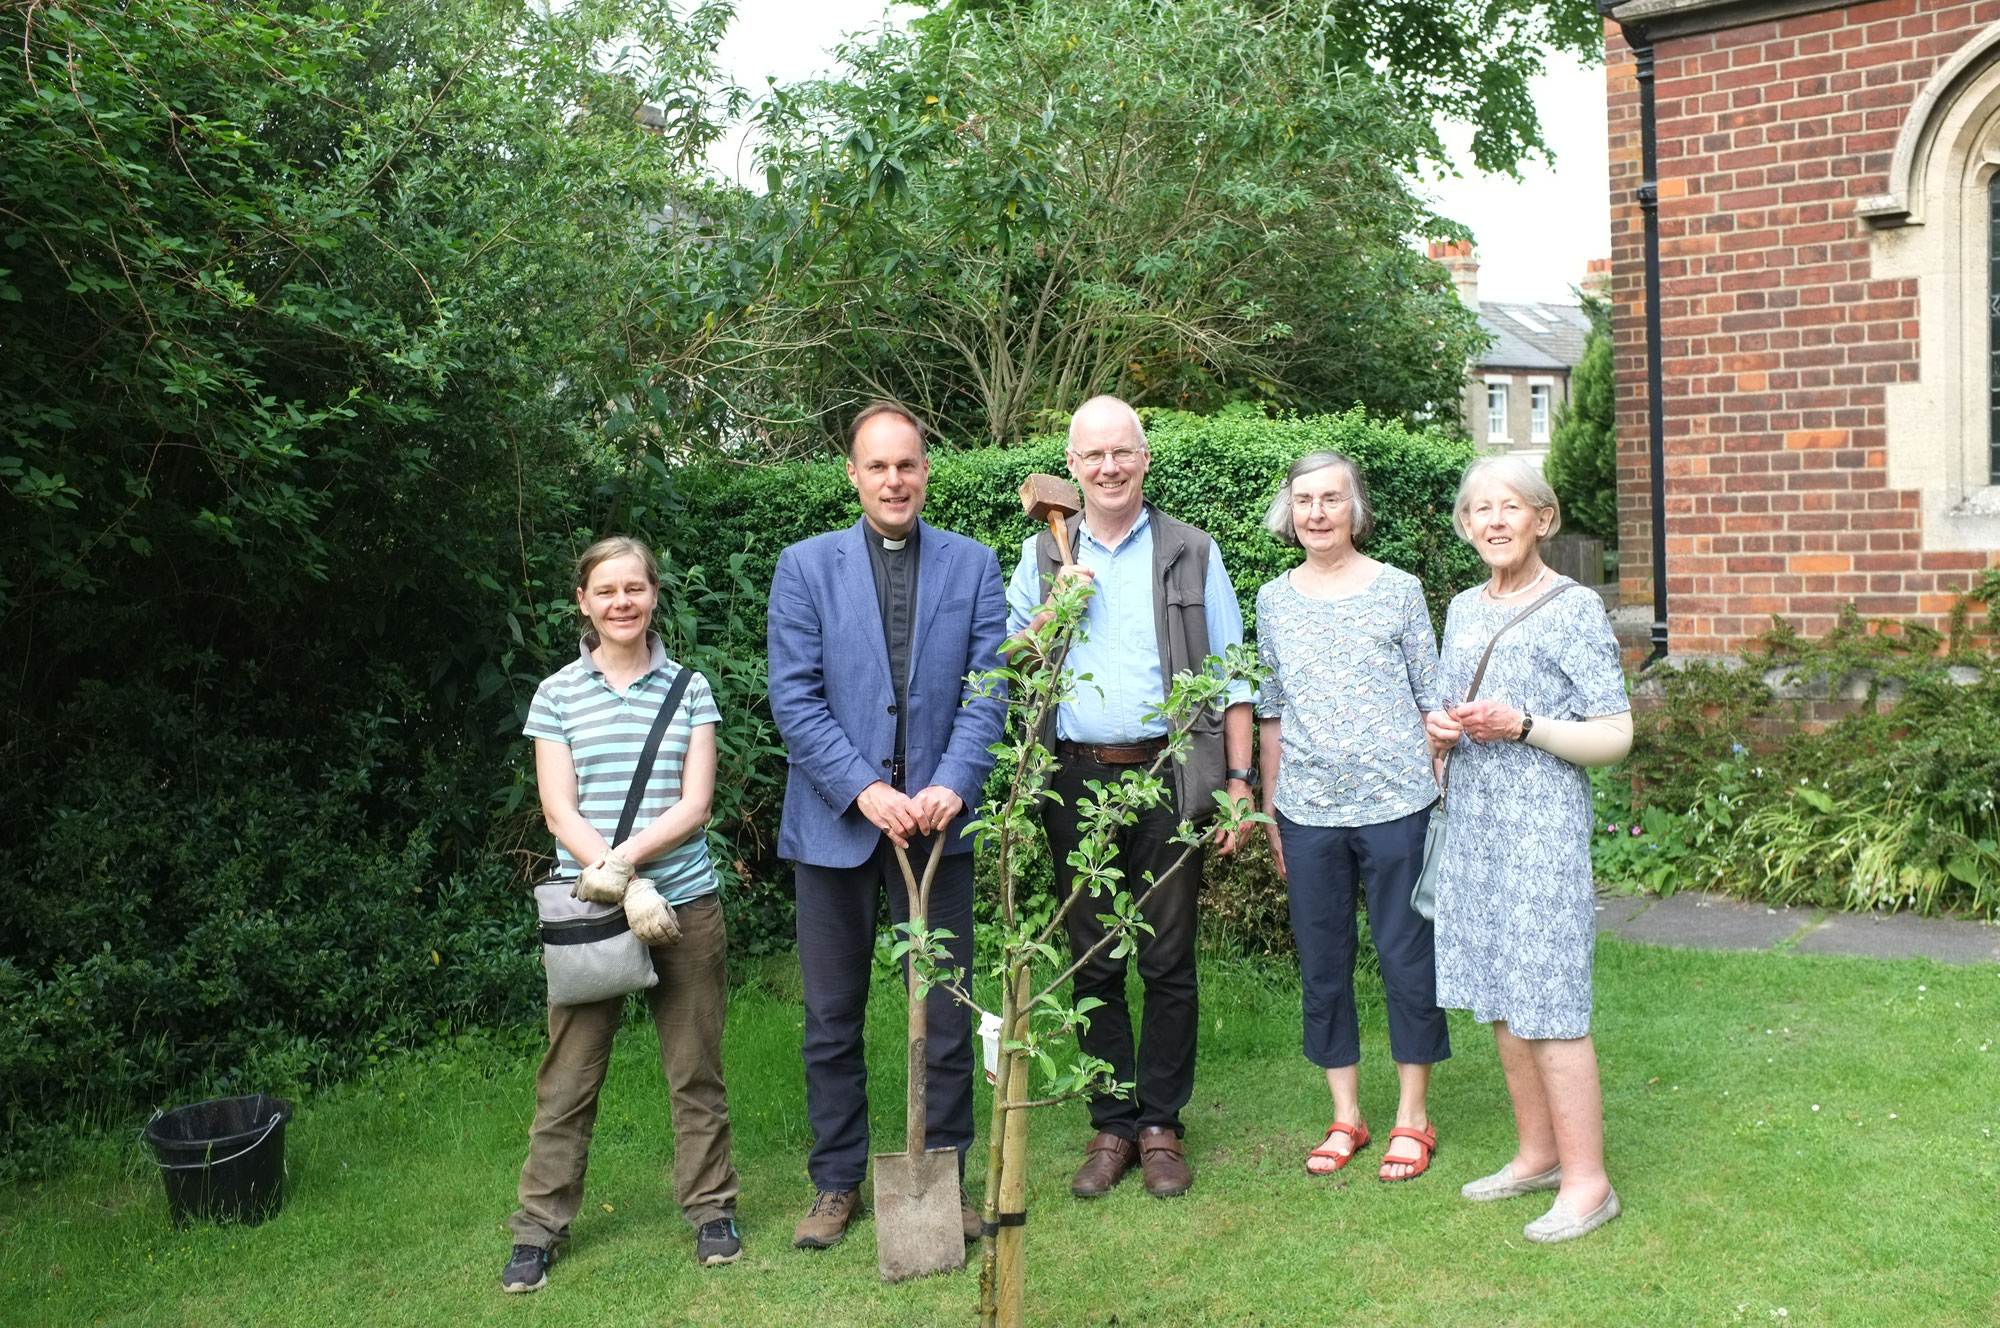 Planting of an apple tree